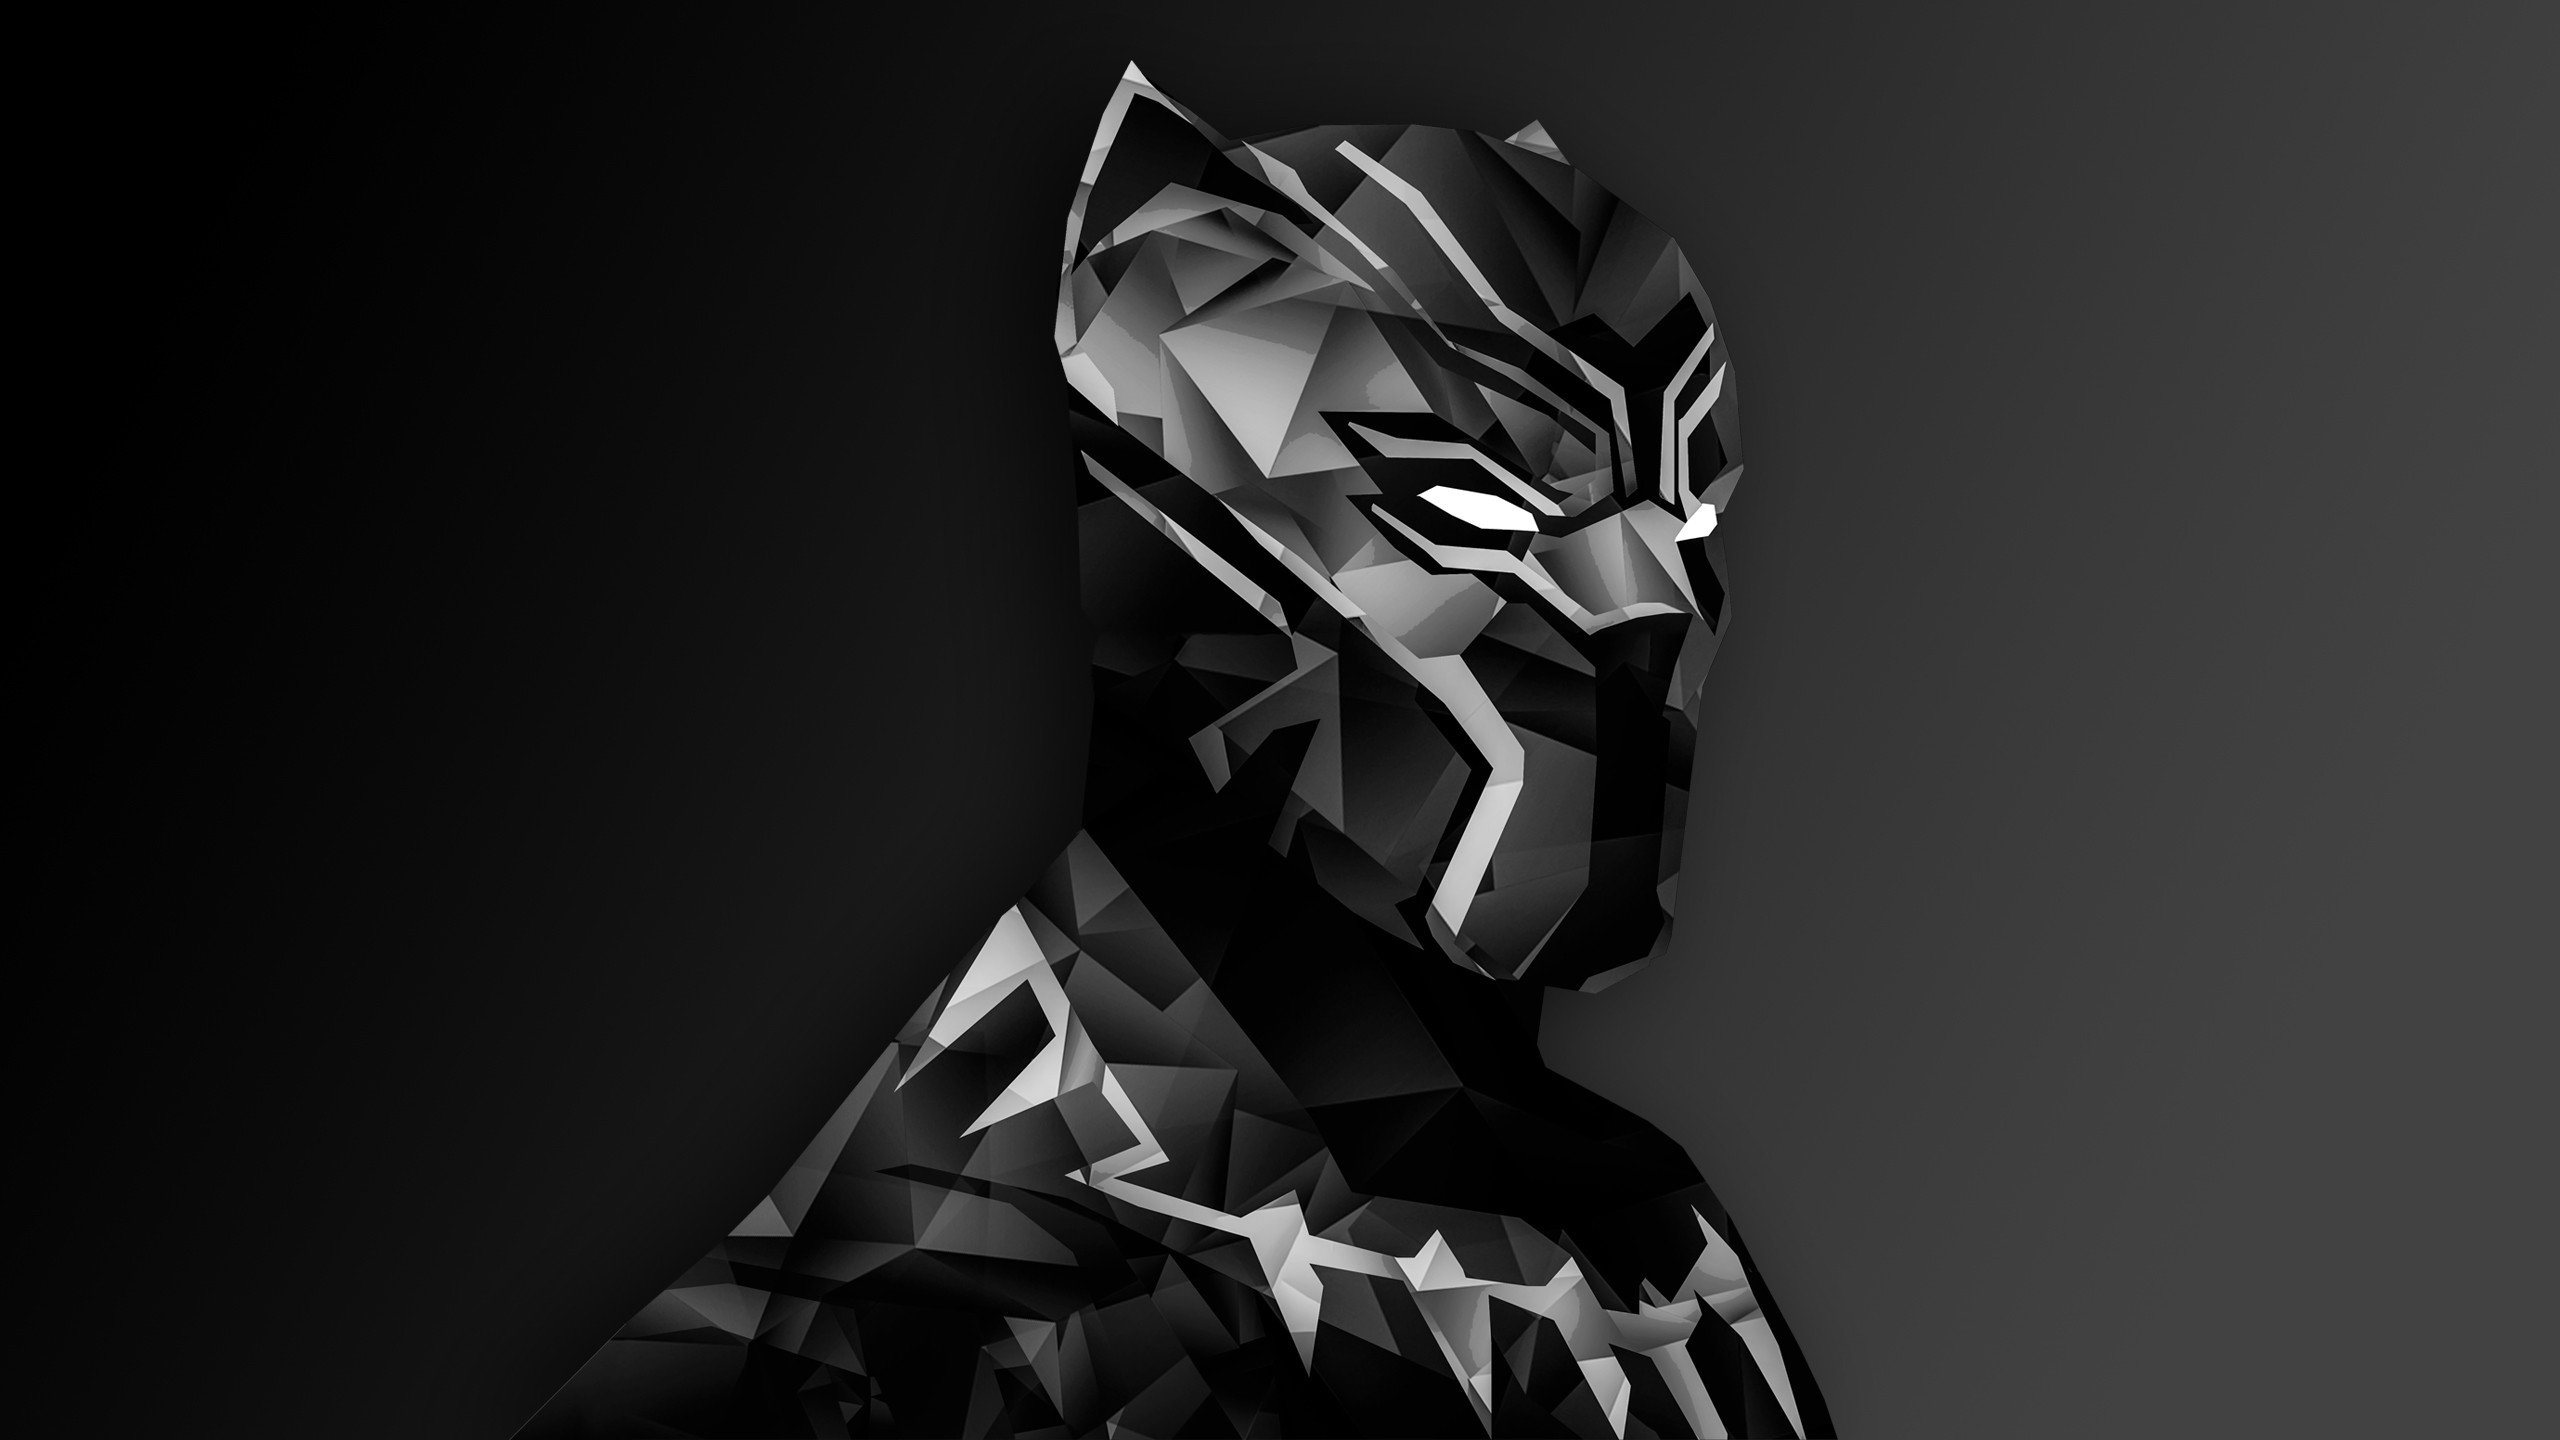 Transformers Wallpaper Hd Widescreen Black Panther Wallpapers Pictures Images